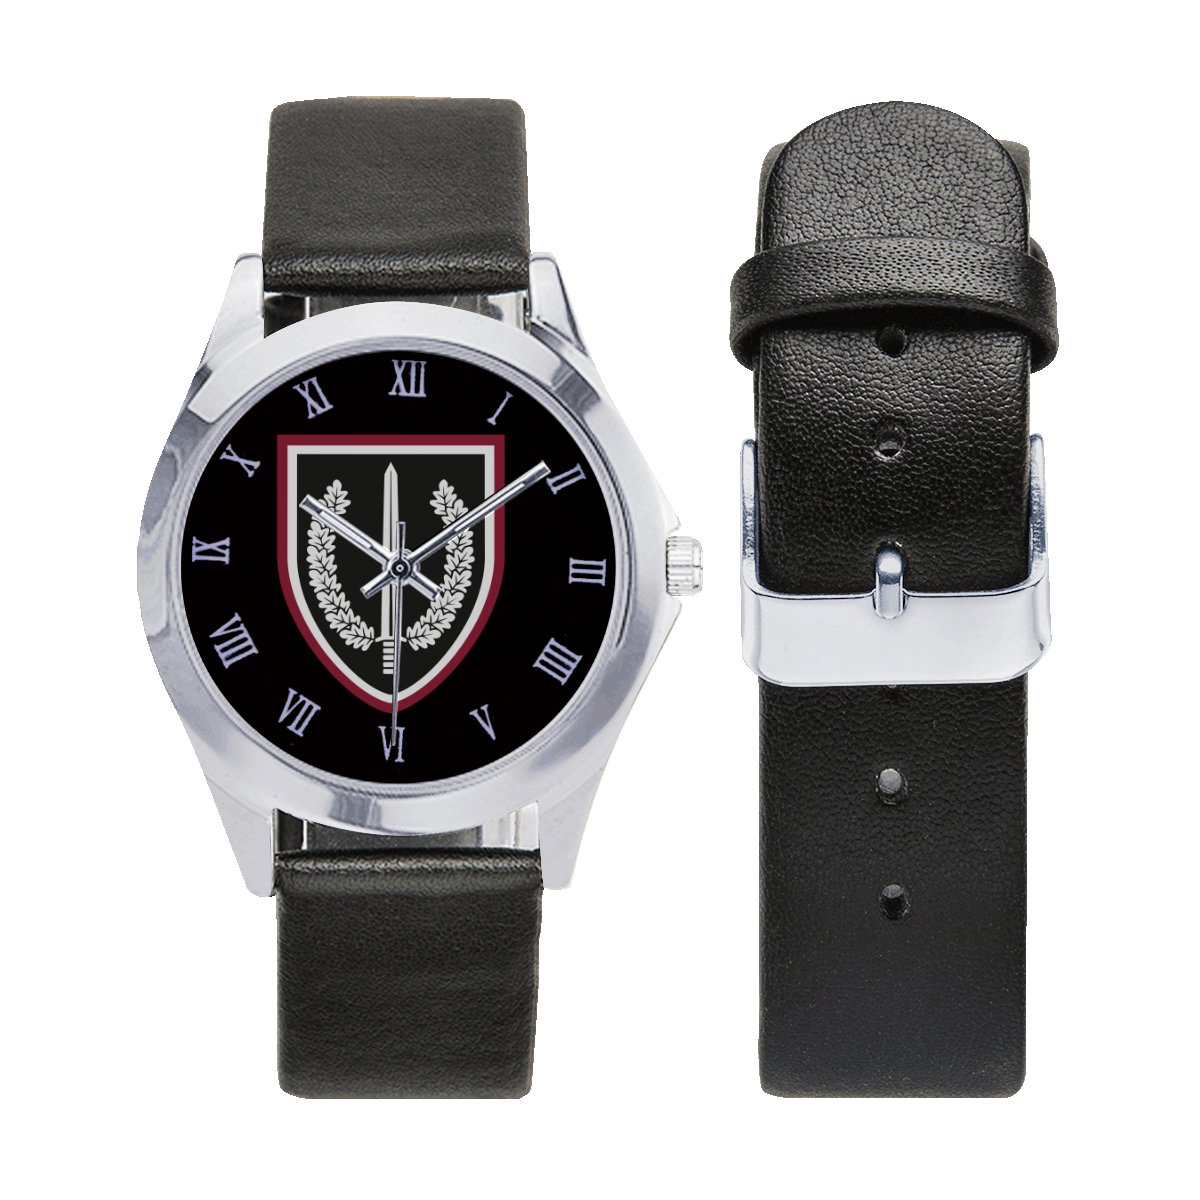 KSK Germany Kommando Spezialkräfte Leather Strap Watch Wrist Watches a perfect accessory